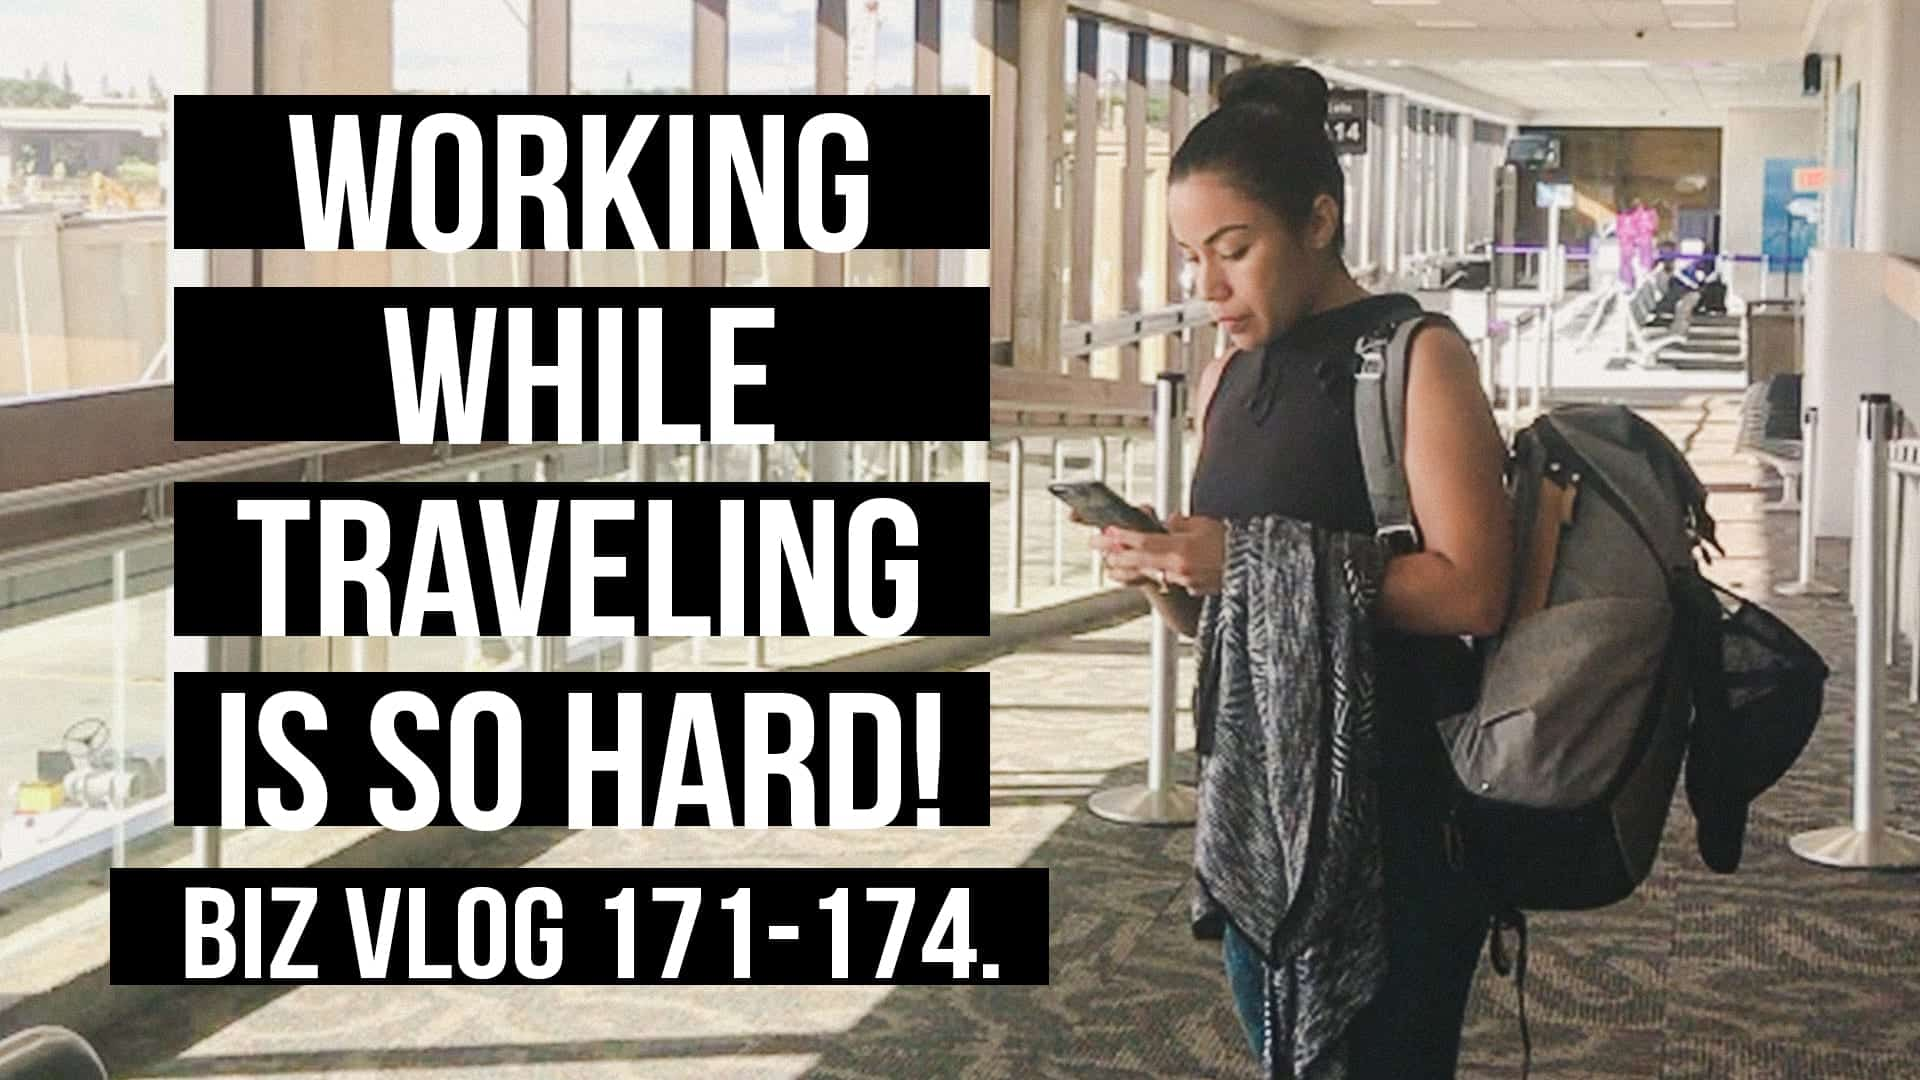 WORKING WHILE TRAVELING IS SO HARD! BIZ VLOG 171-174.